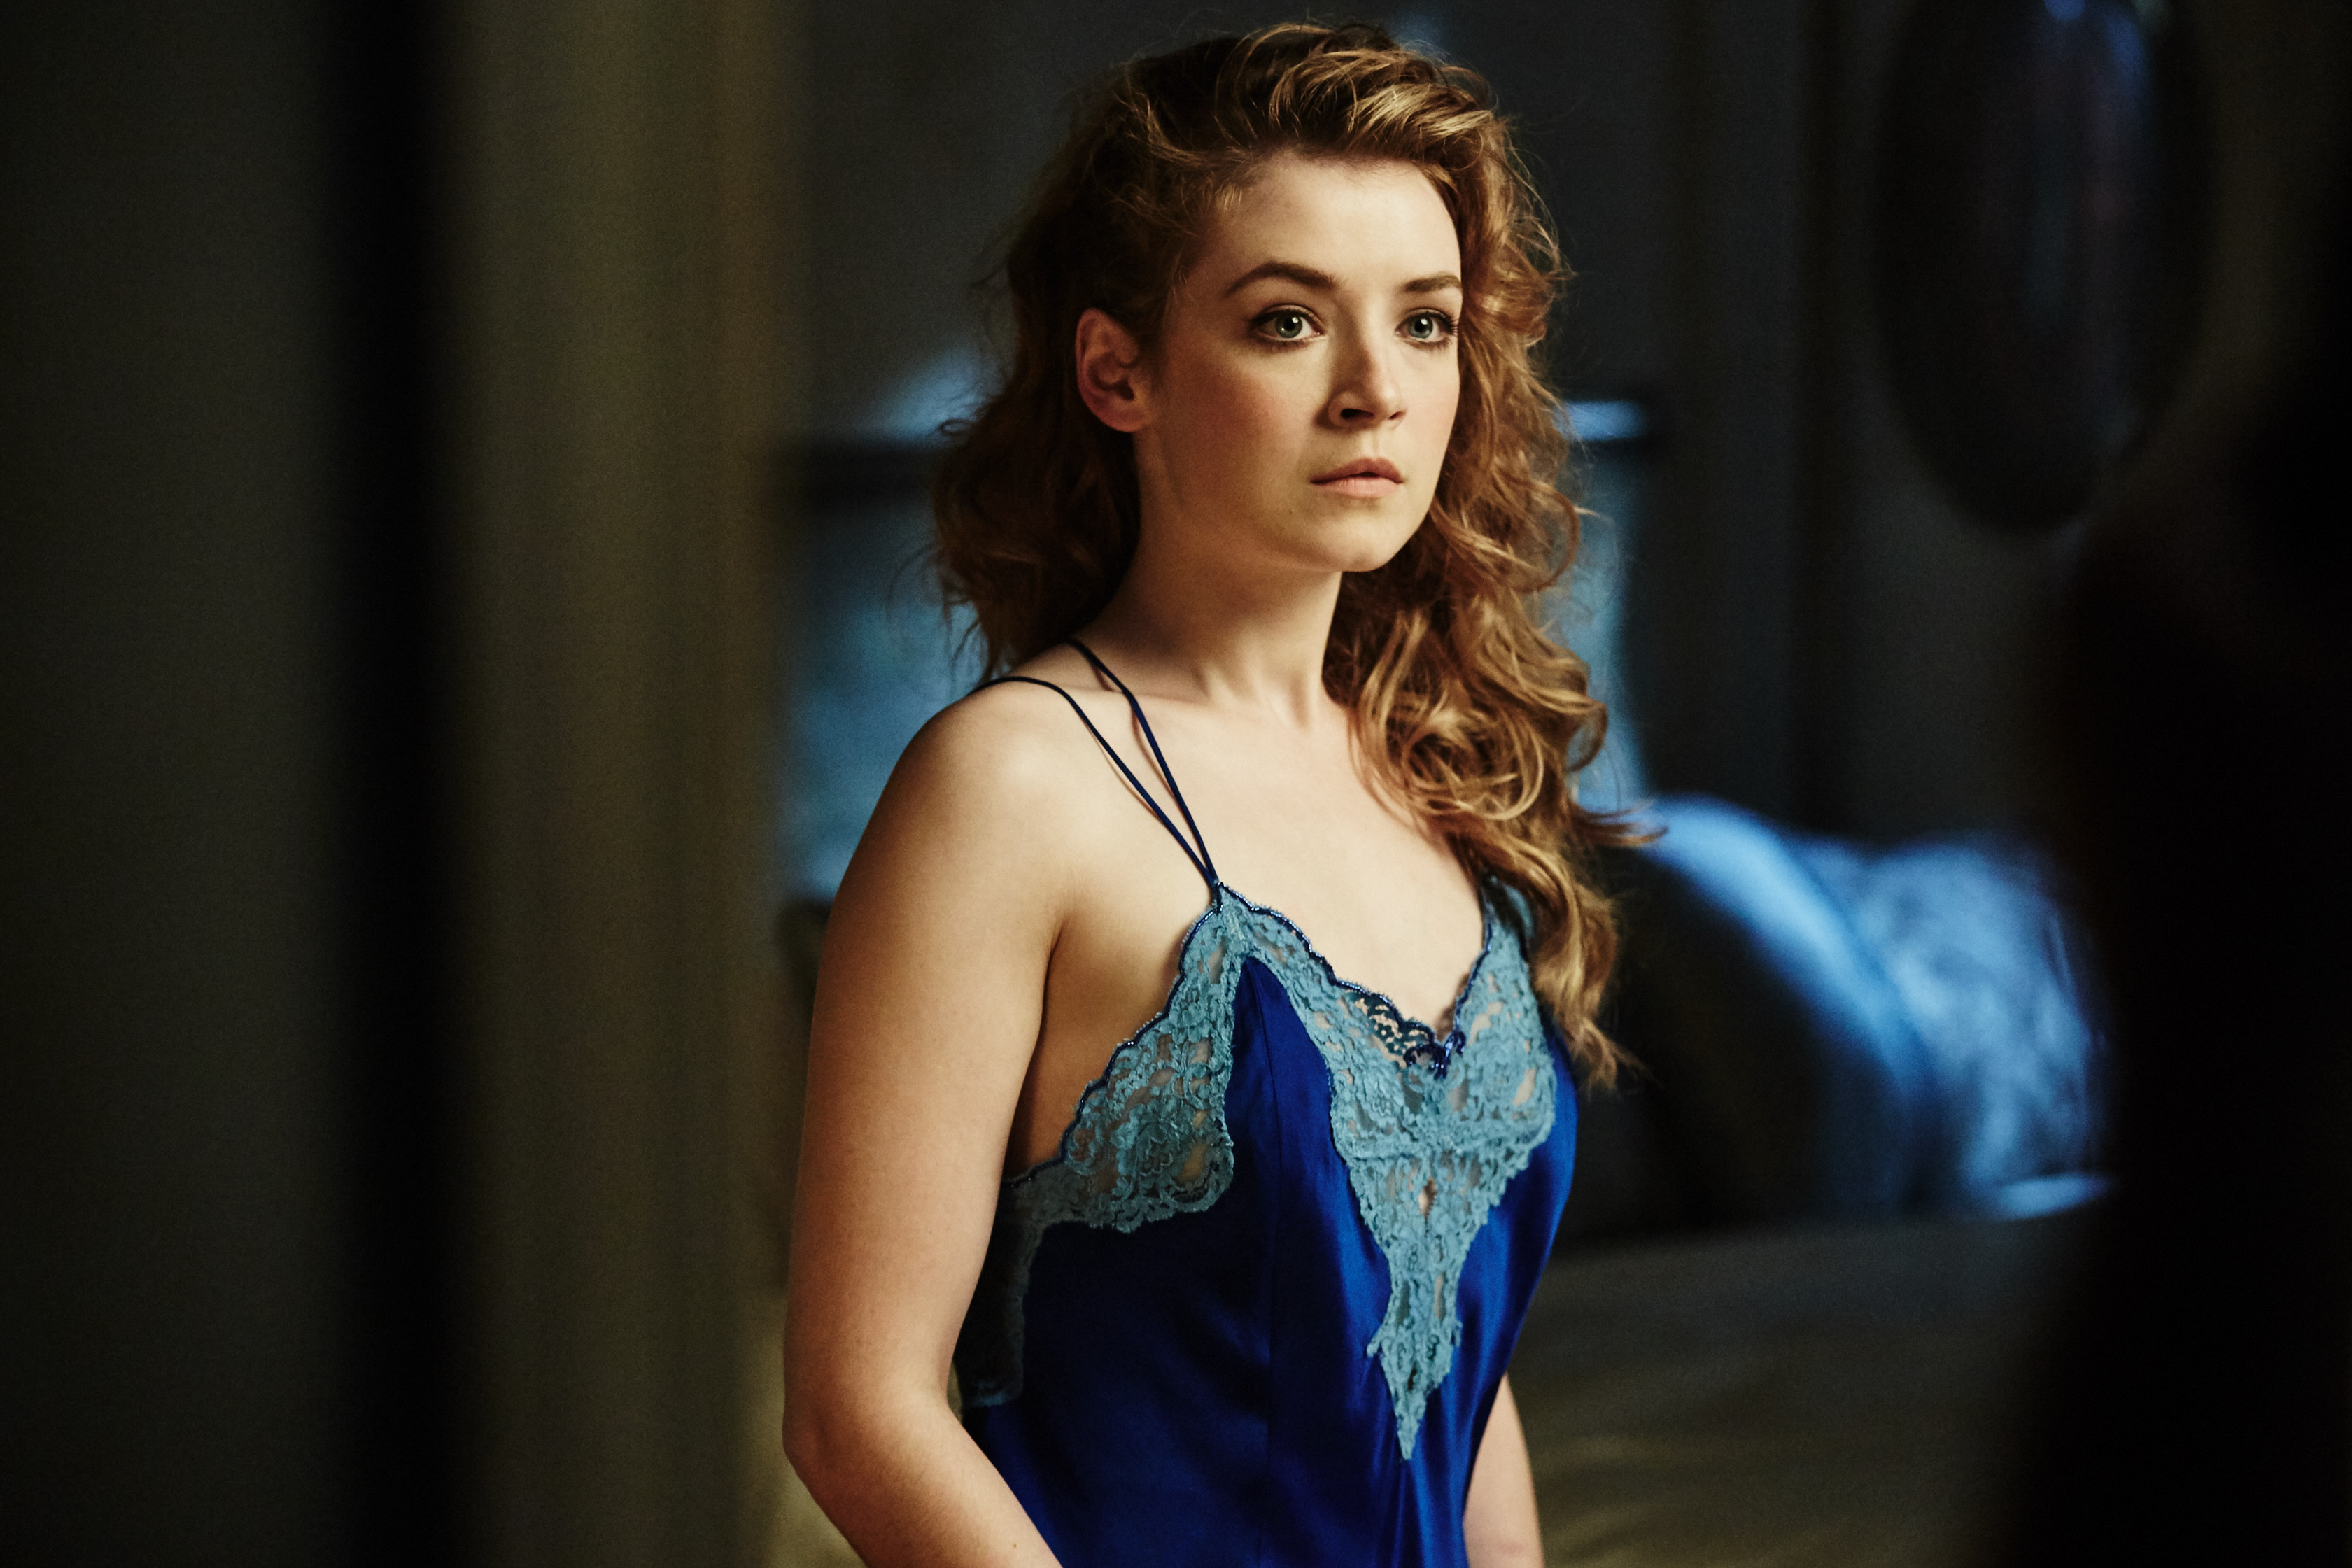 Sarah Bolger as Jade - Into the Badlands